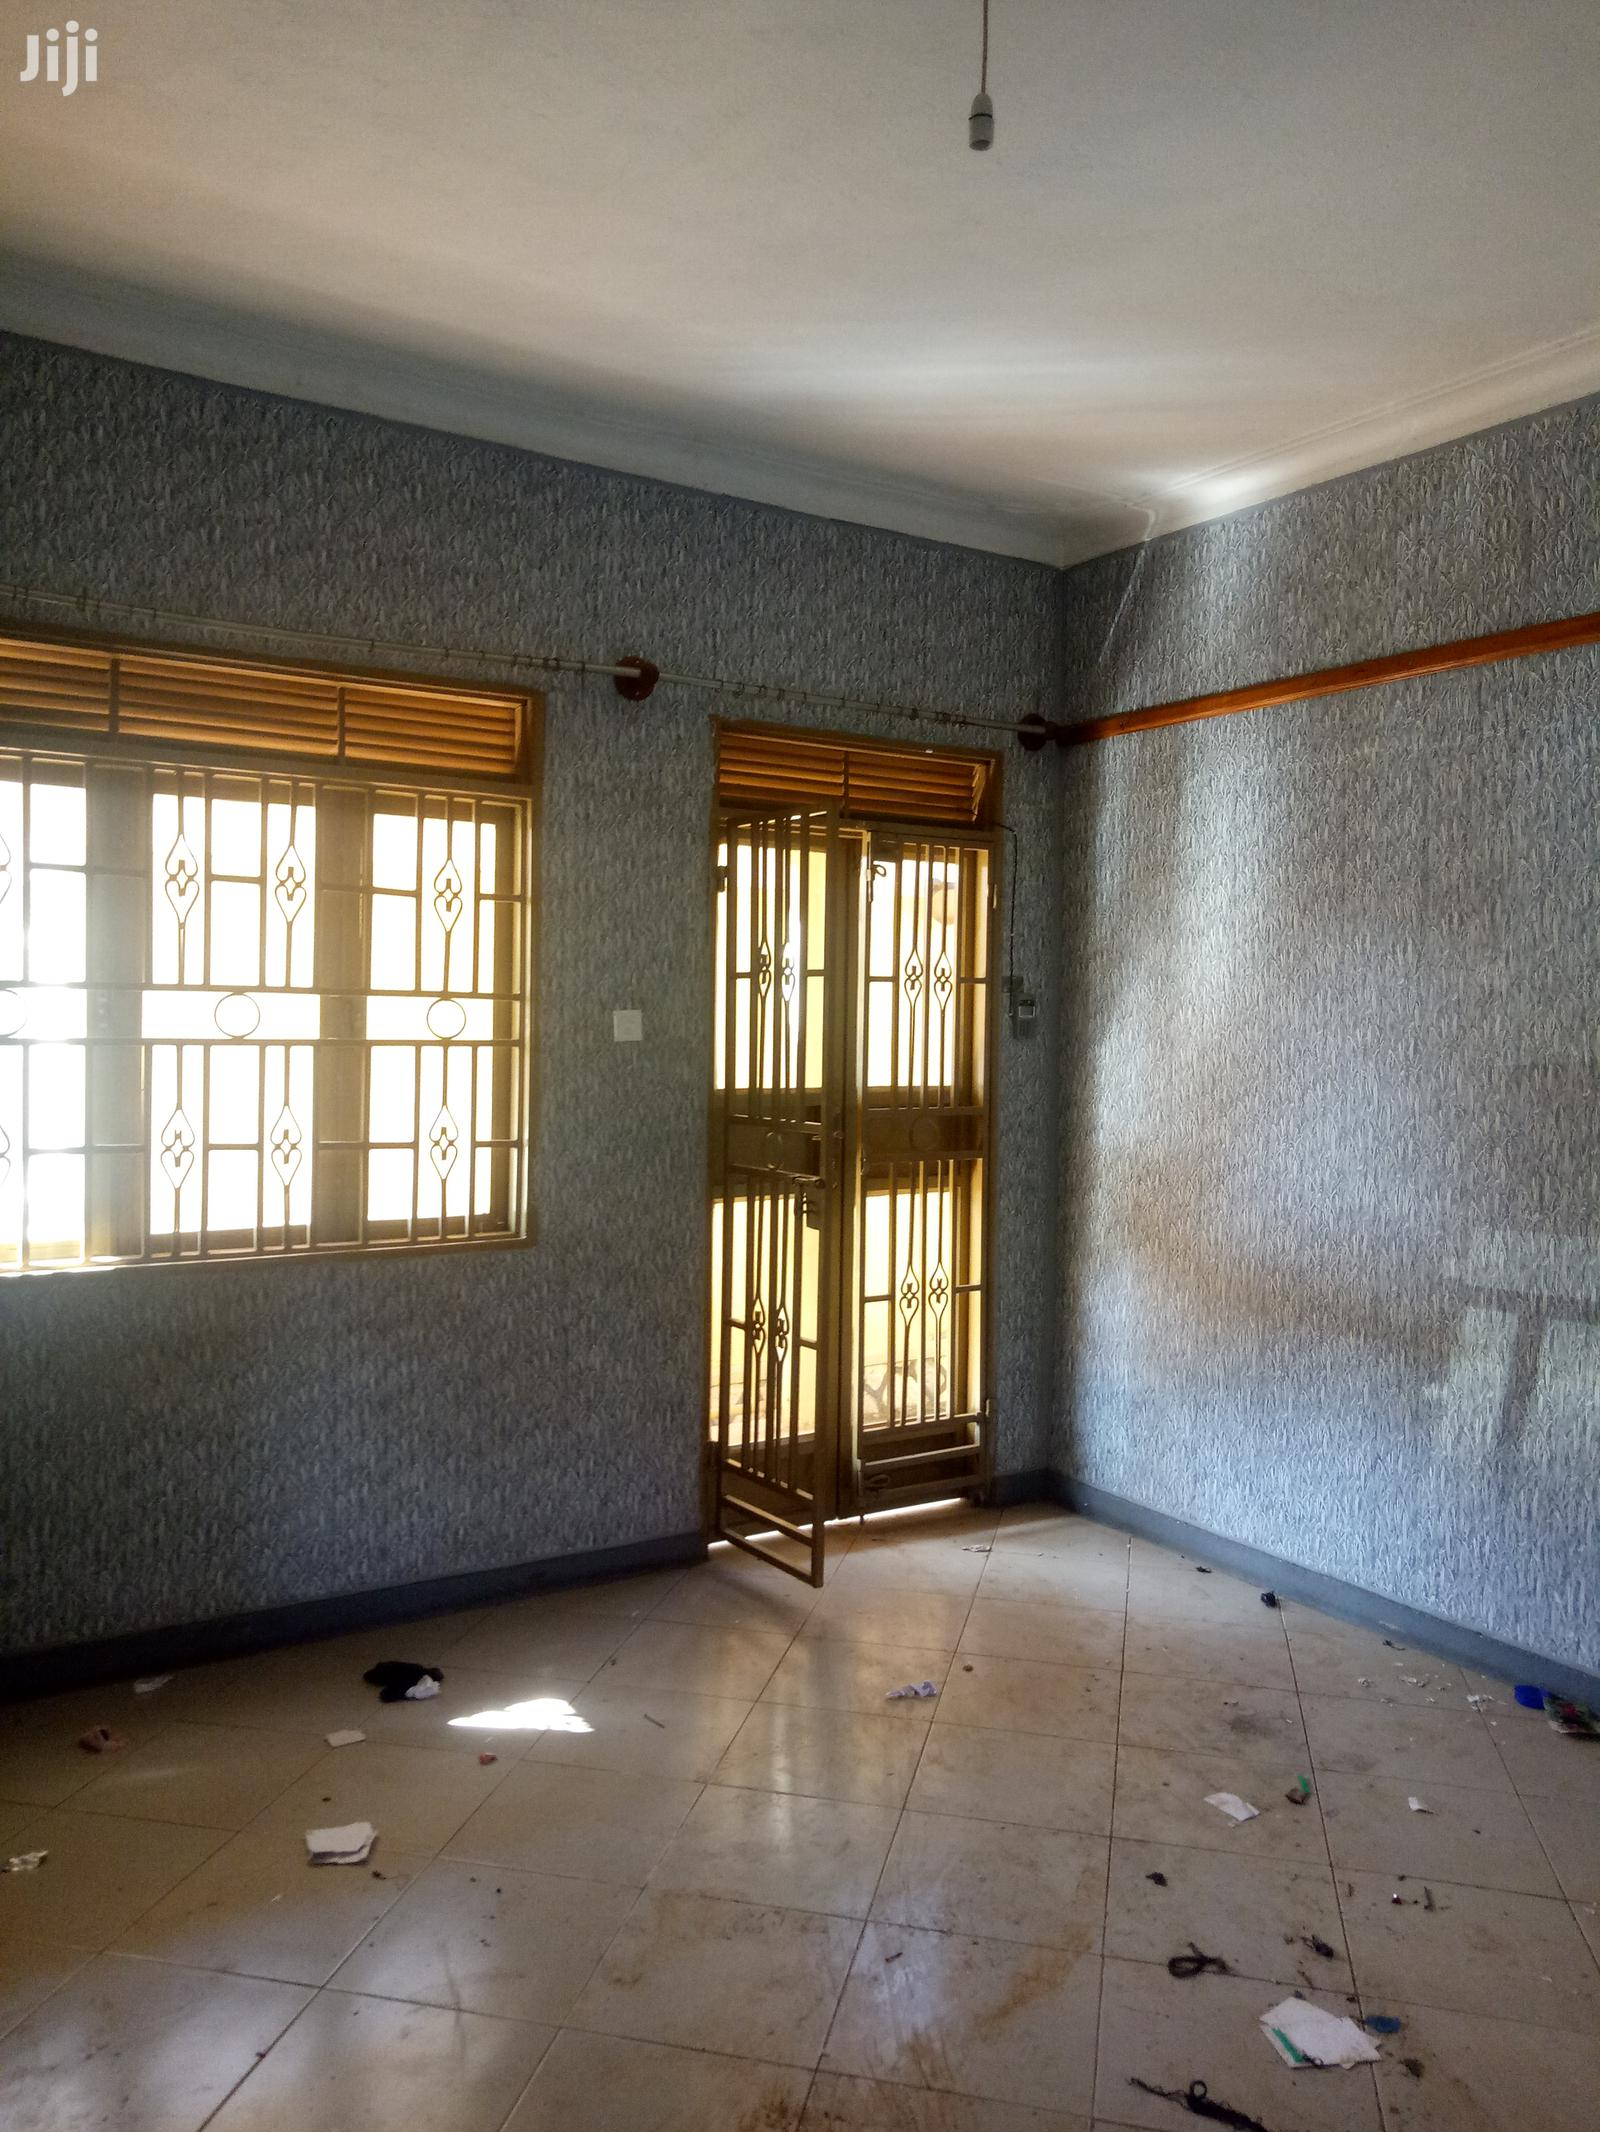 Double Room House In Kireka For Rent   Houses & Apartments For Rent for sale in Kampala, Central Region, Uganda